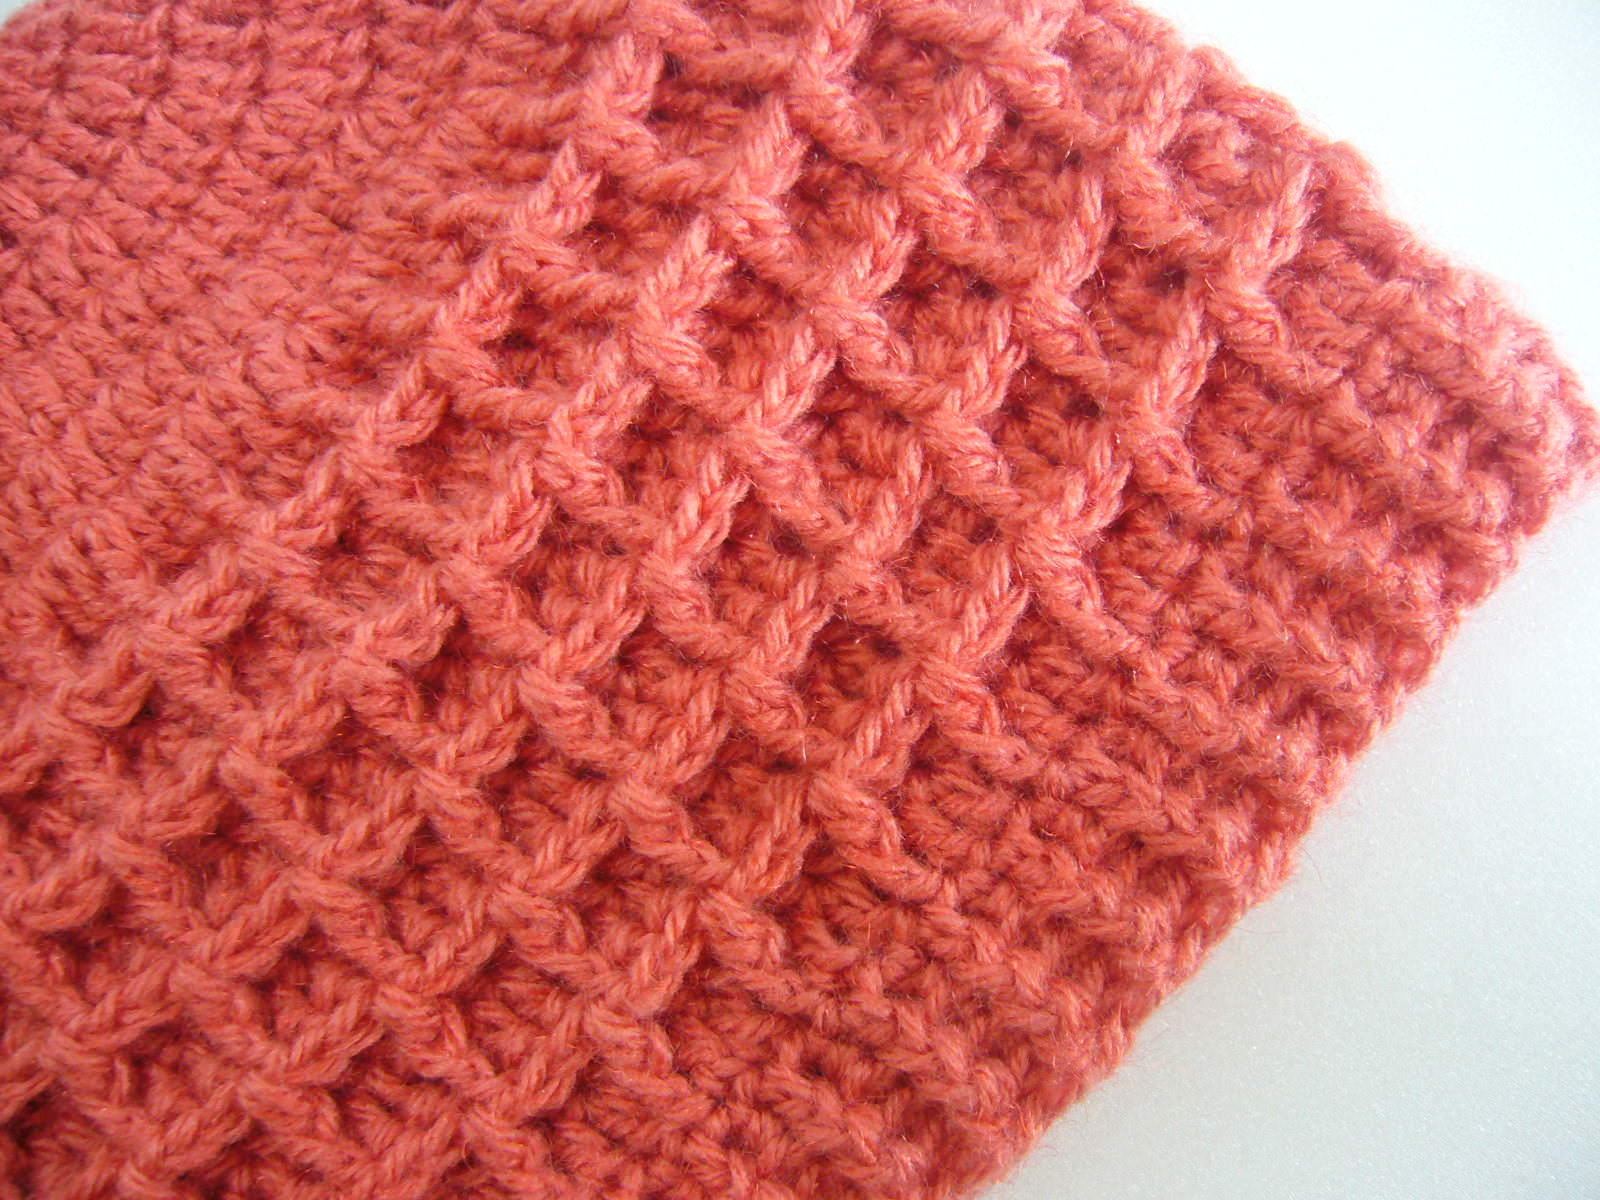 Crochet Patterns Waffle Stitch : Crochetkari: September 2015